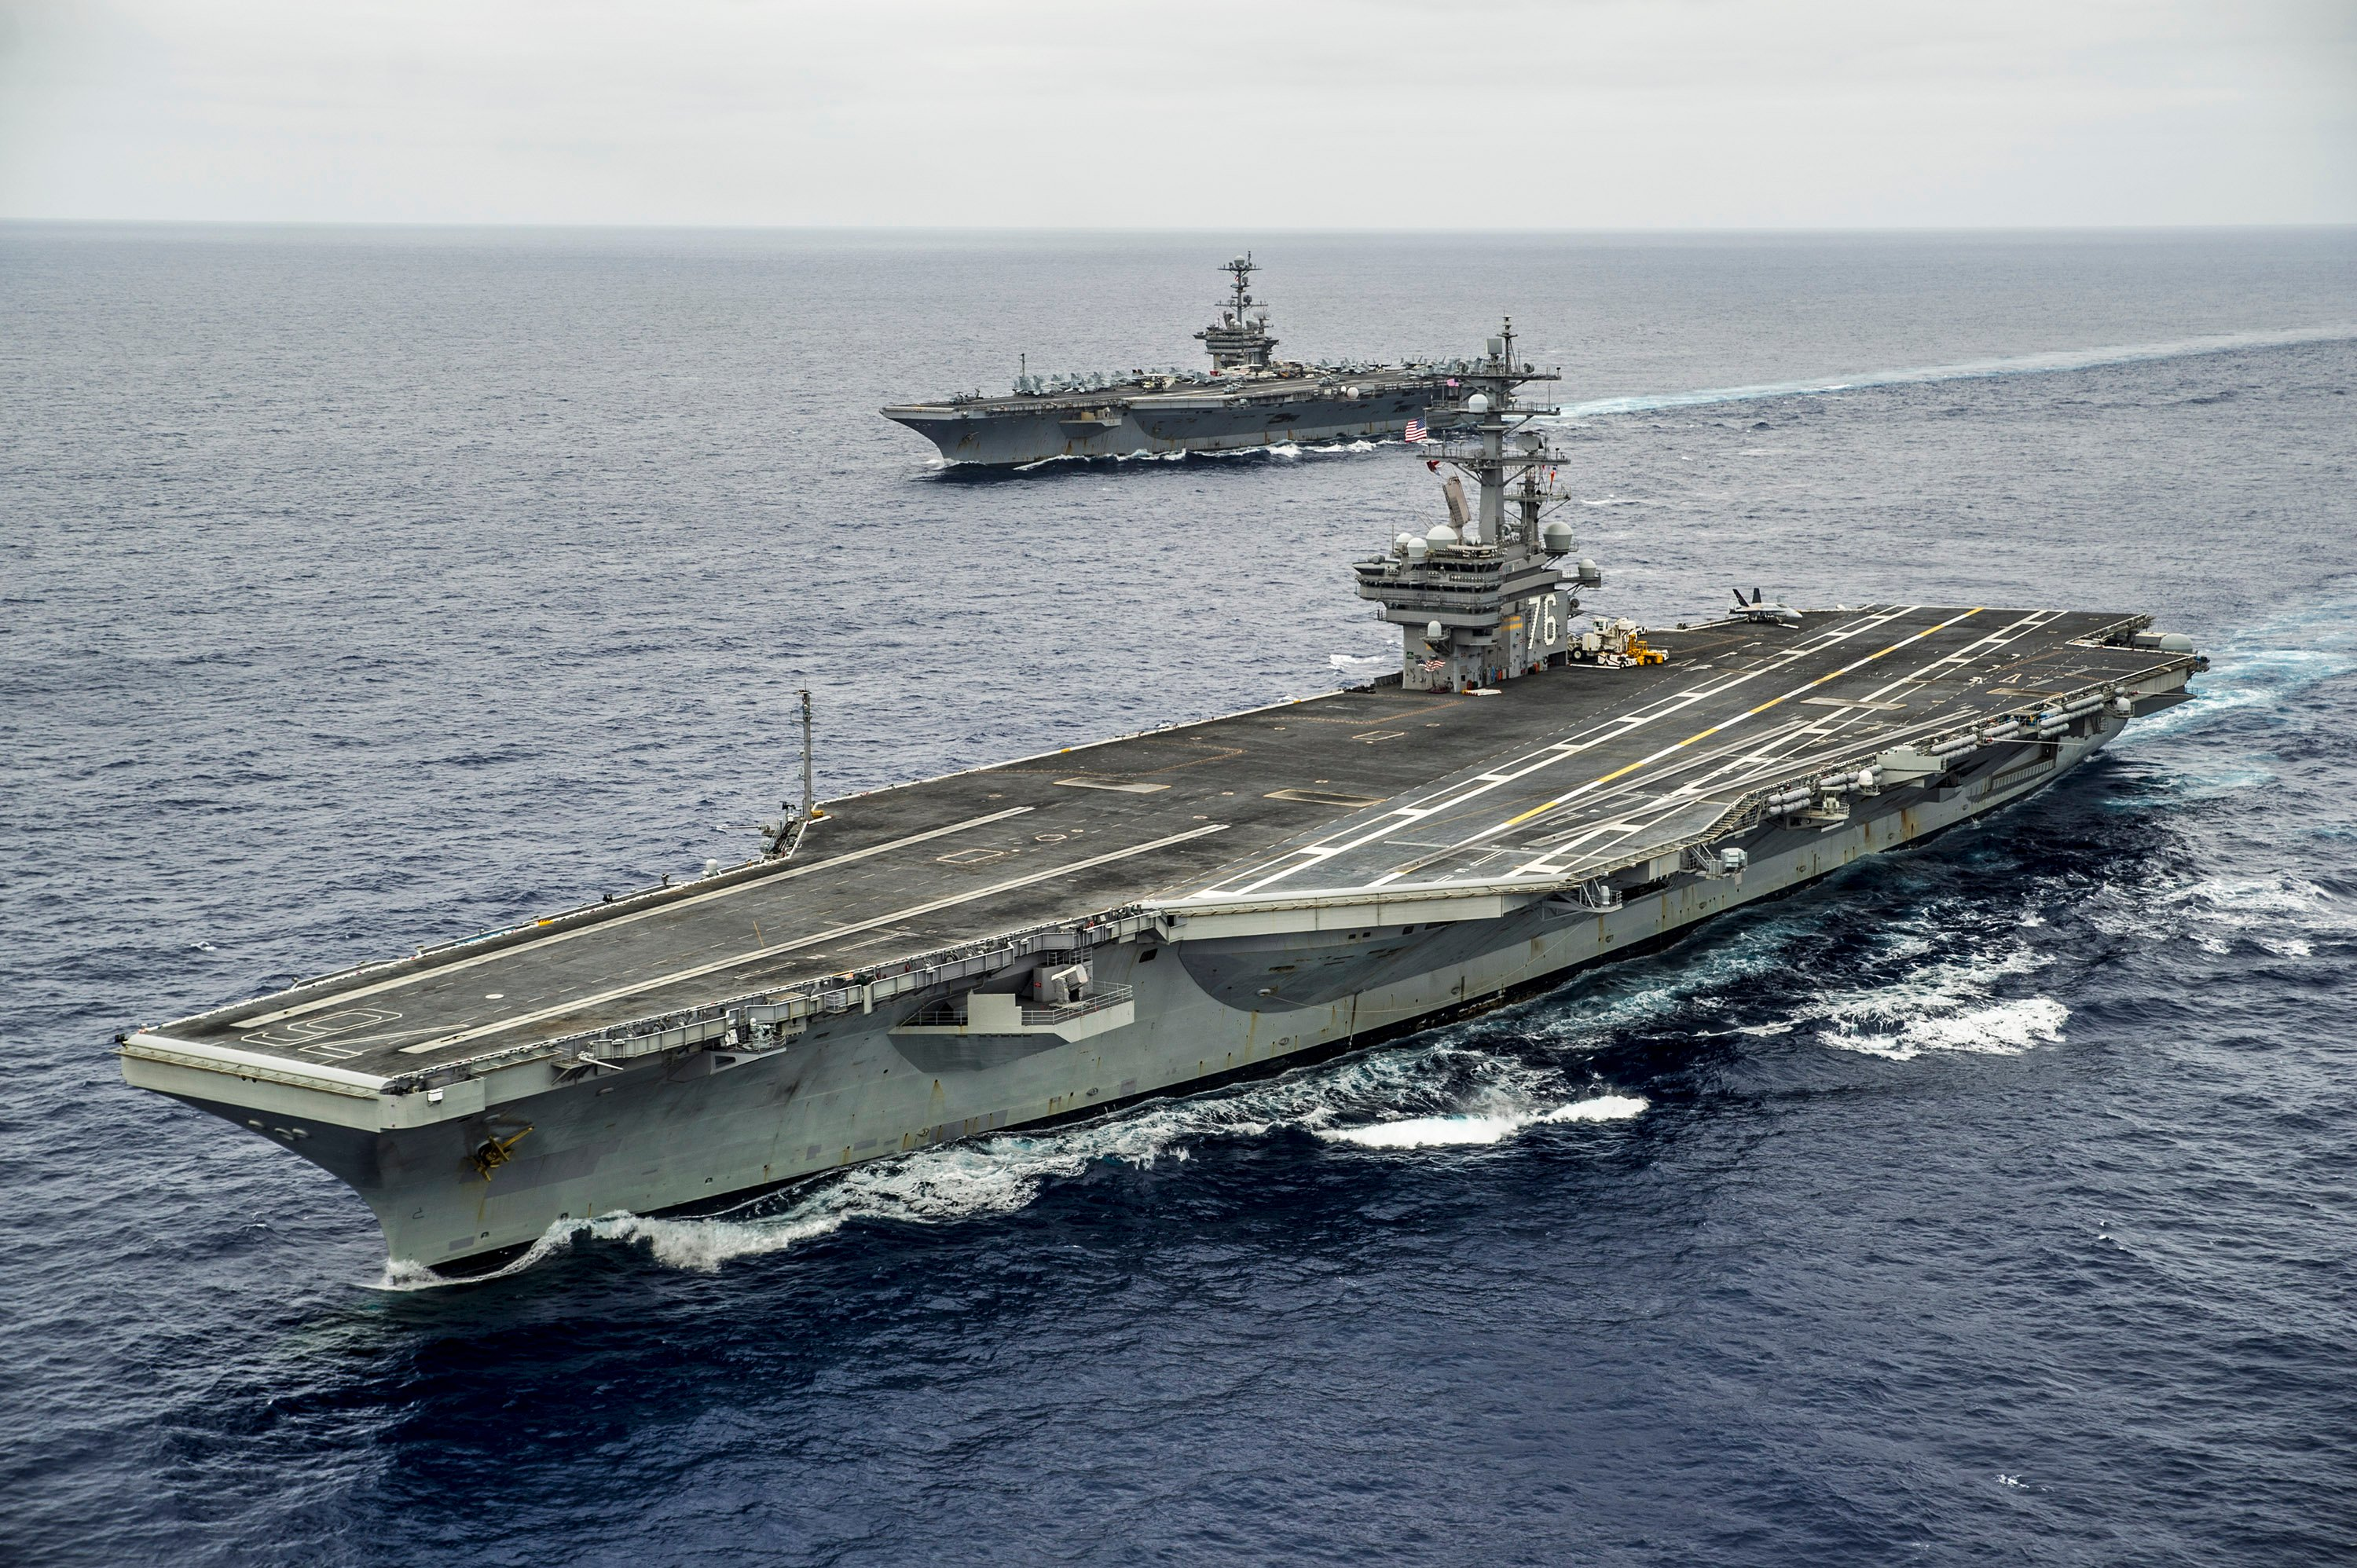 USS George Washington (CVN-73) and USS Ronald Reagan (CVN-76) transit the Pacific Ocean prior to conducting a hull-swap on Aug, 7, 2015. US Navy Photo